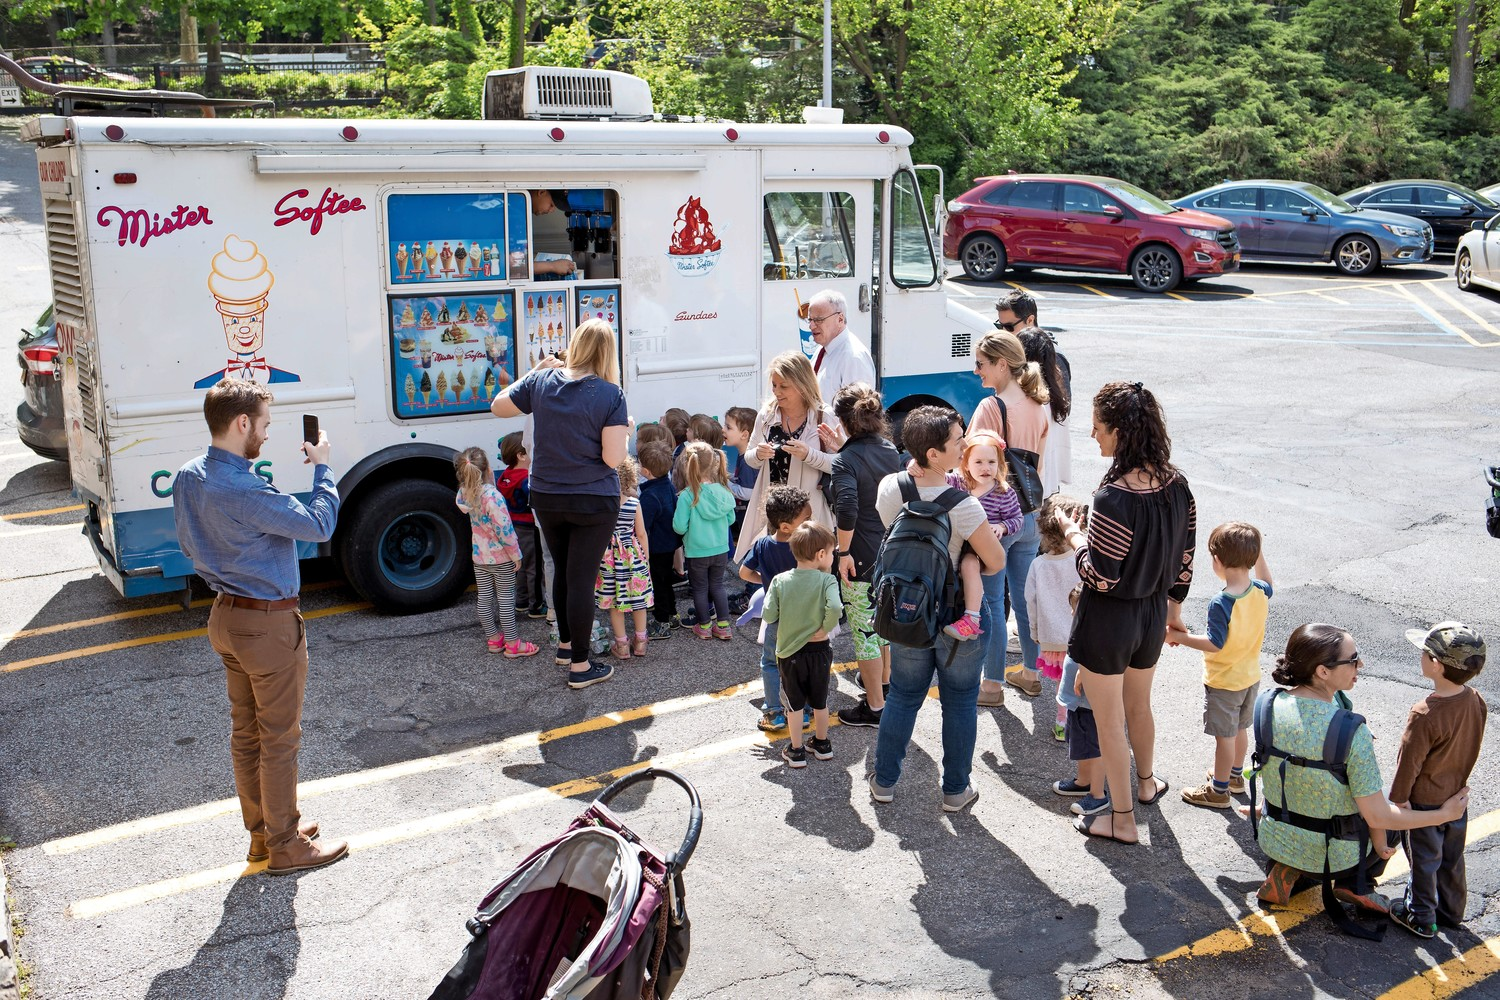 Kids line up for sweet treats at the Mister Softee truck during Truck Day at the Rivedale Temple.